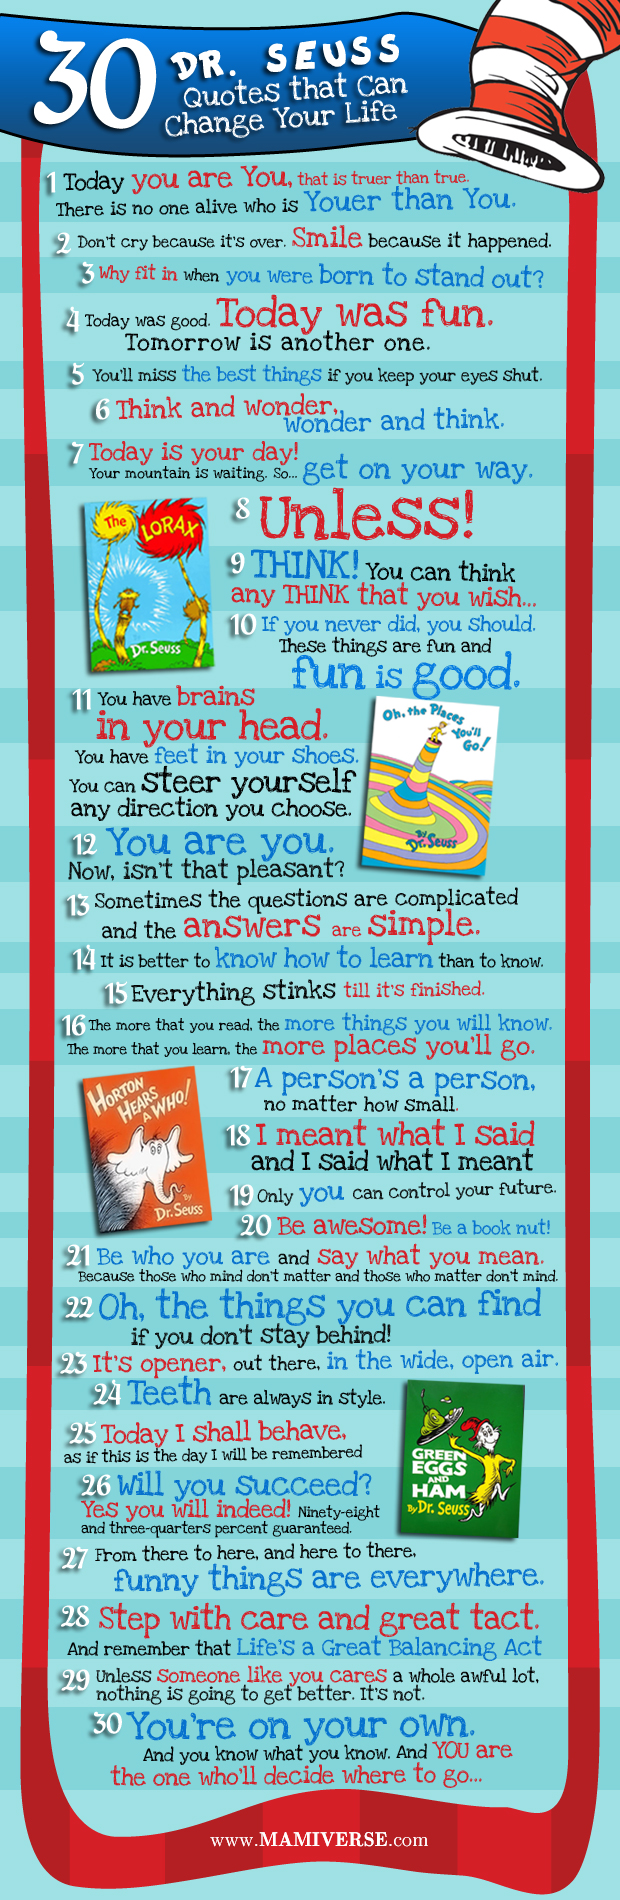 Dr. Suess Quotes That Change The Way You Think